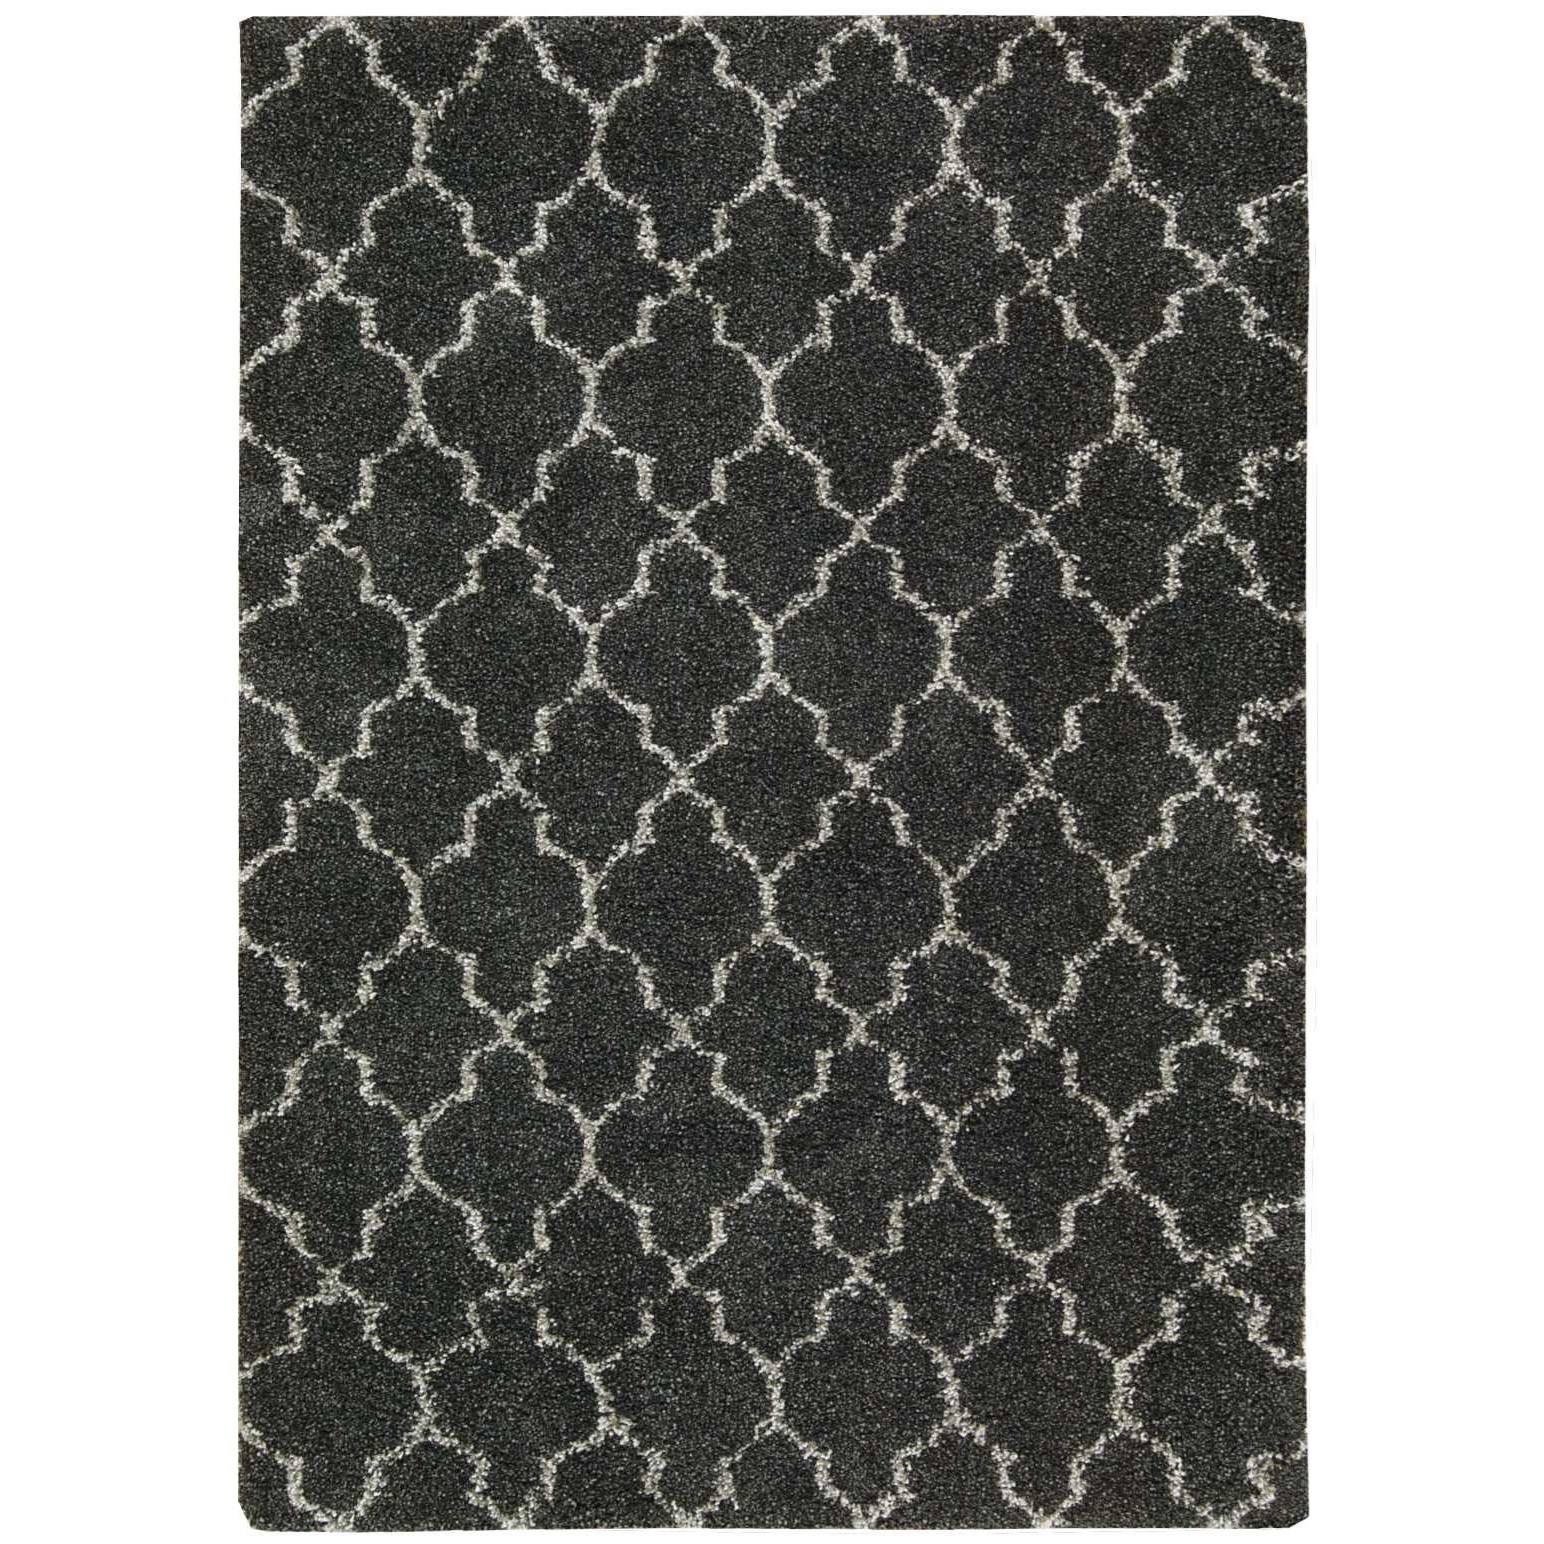 """Amore 6'7"""" x 9'6"""" Charcoal Rectangle Rug by Nourison at Home Collections Furniture"""